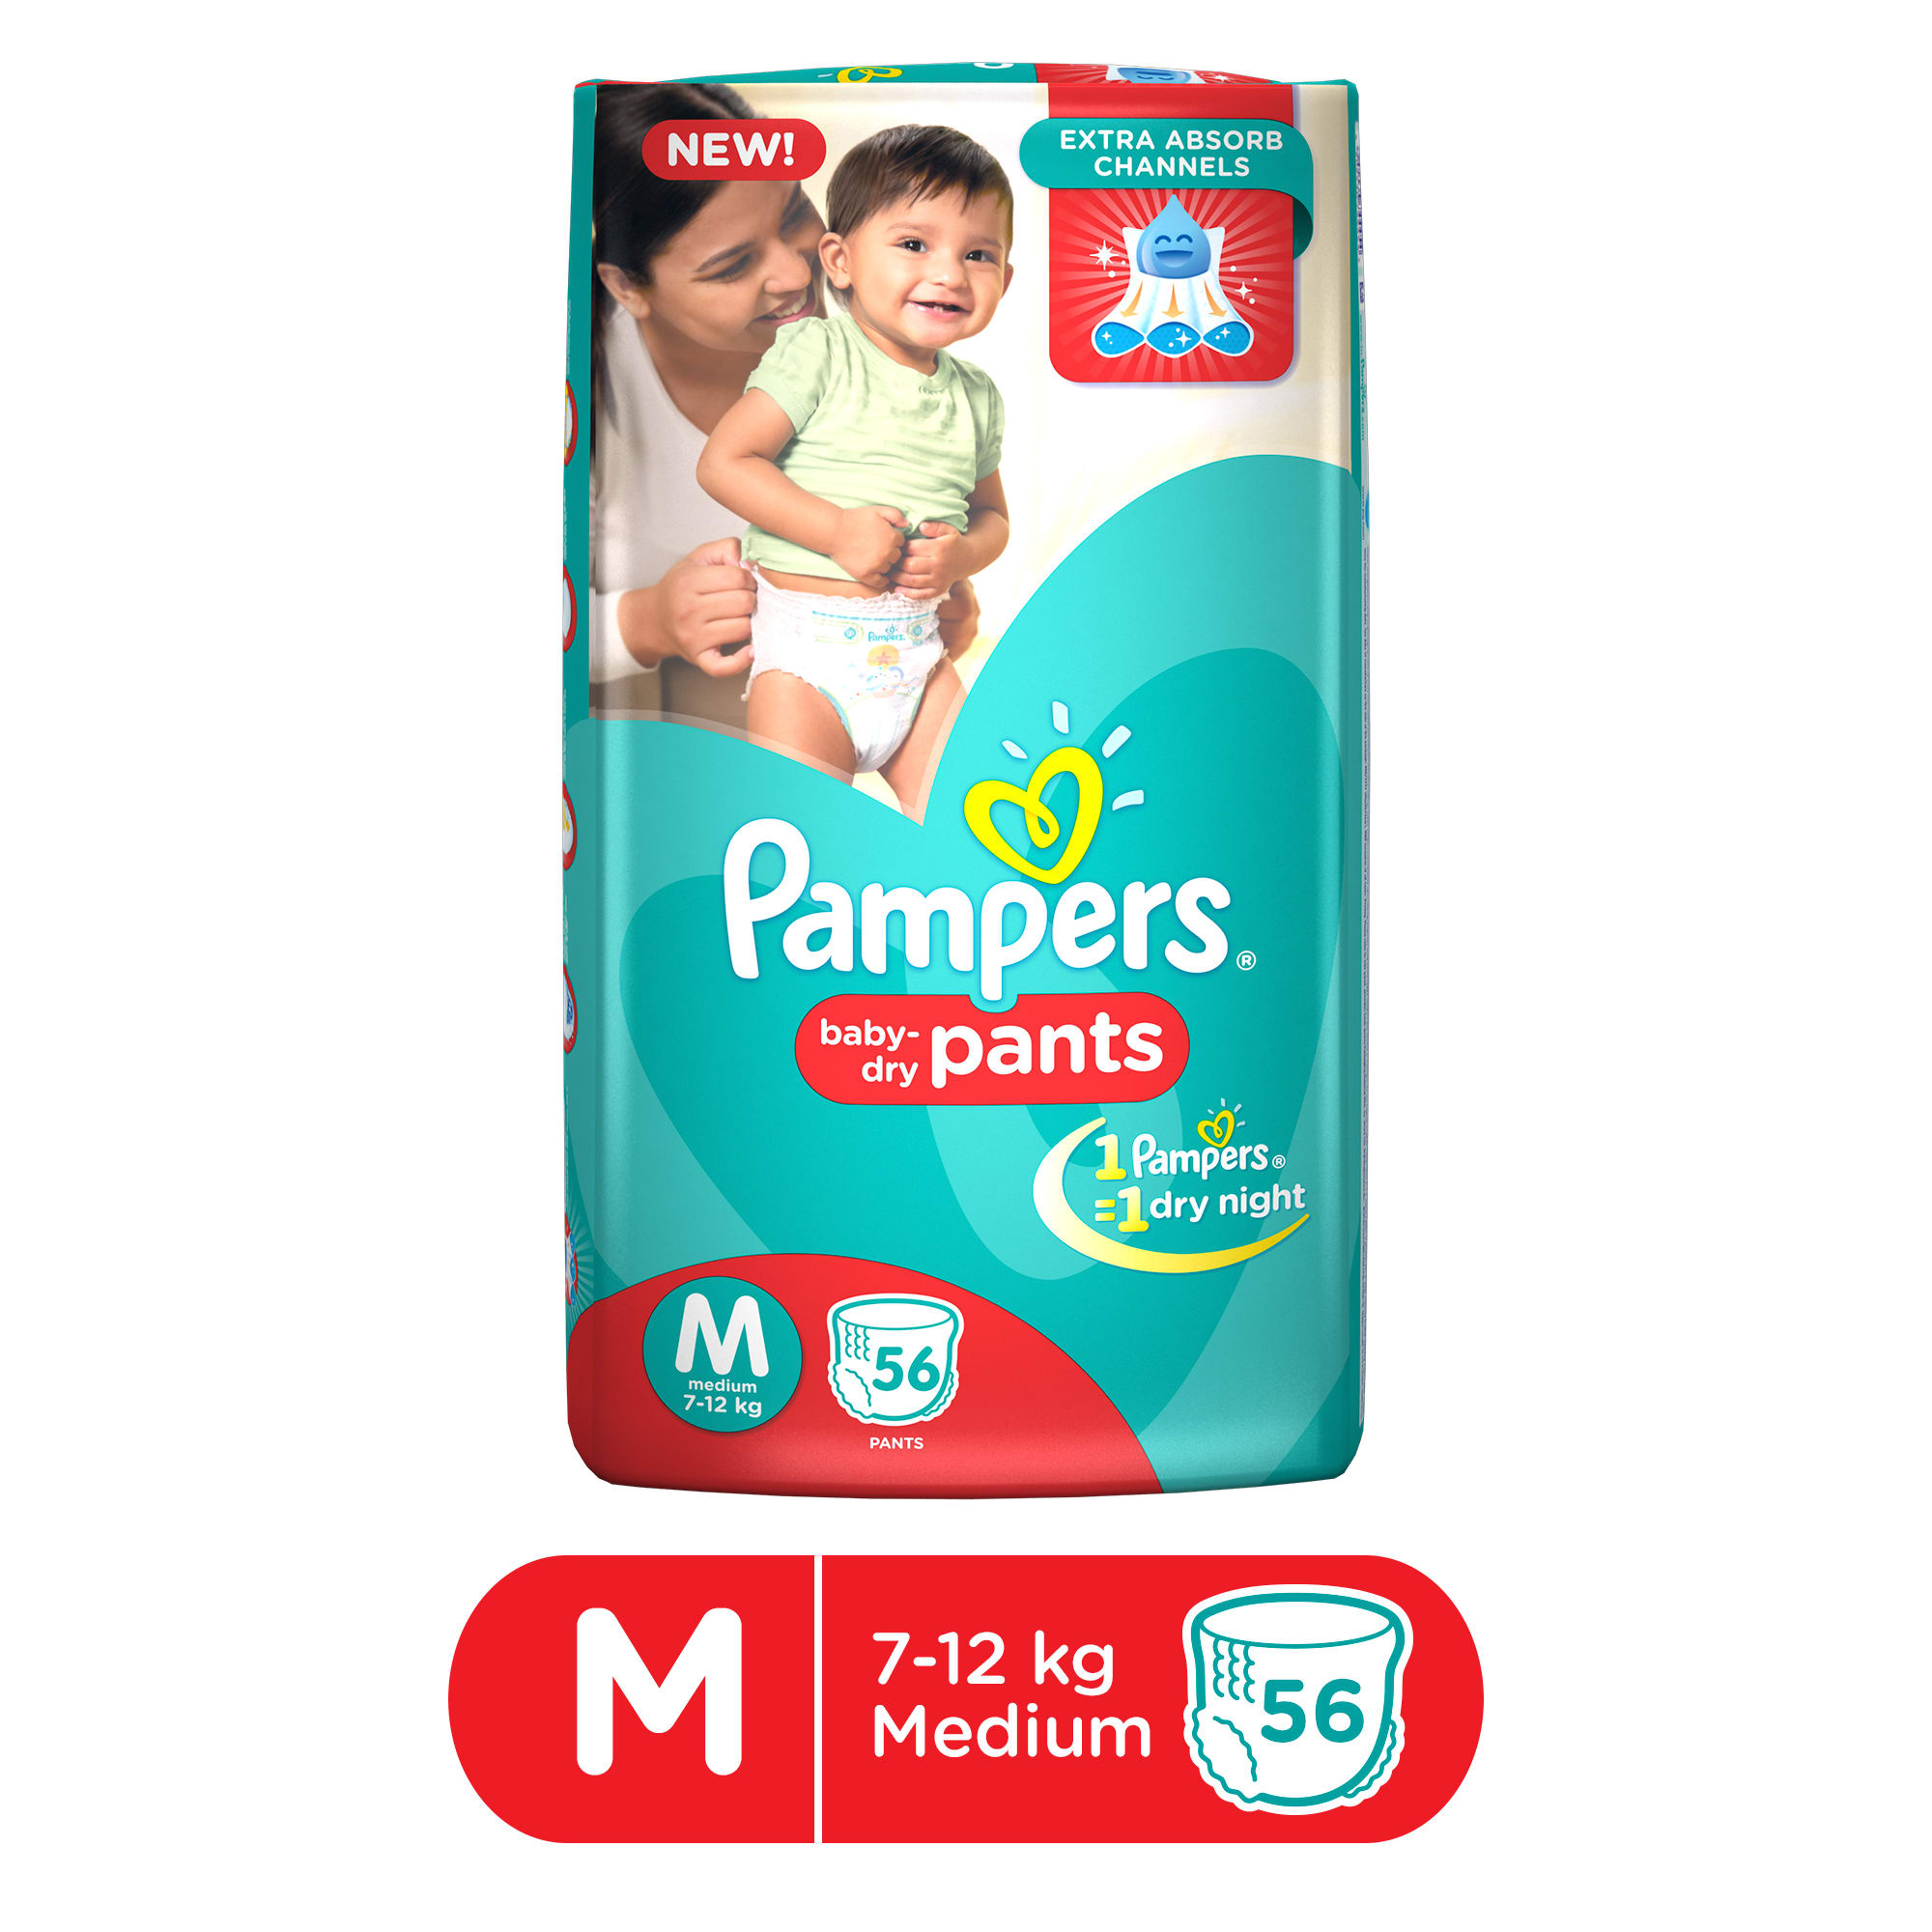 Pampers Baby Dry Pants Diaper M